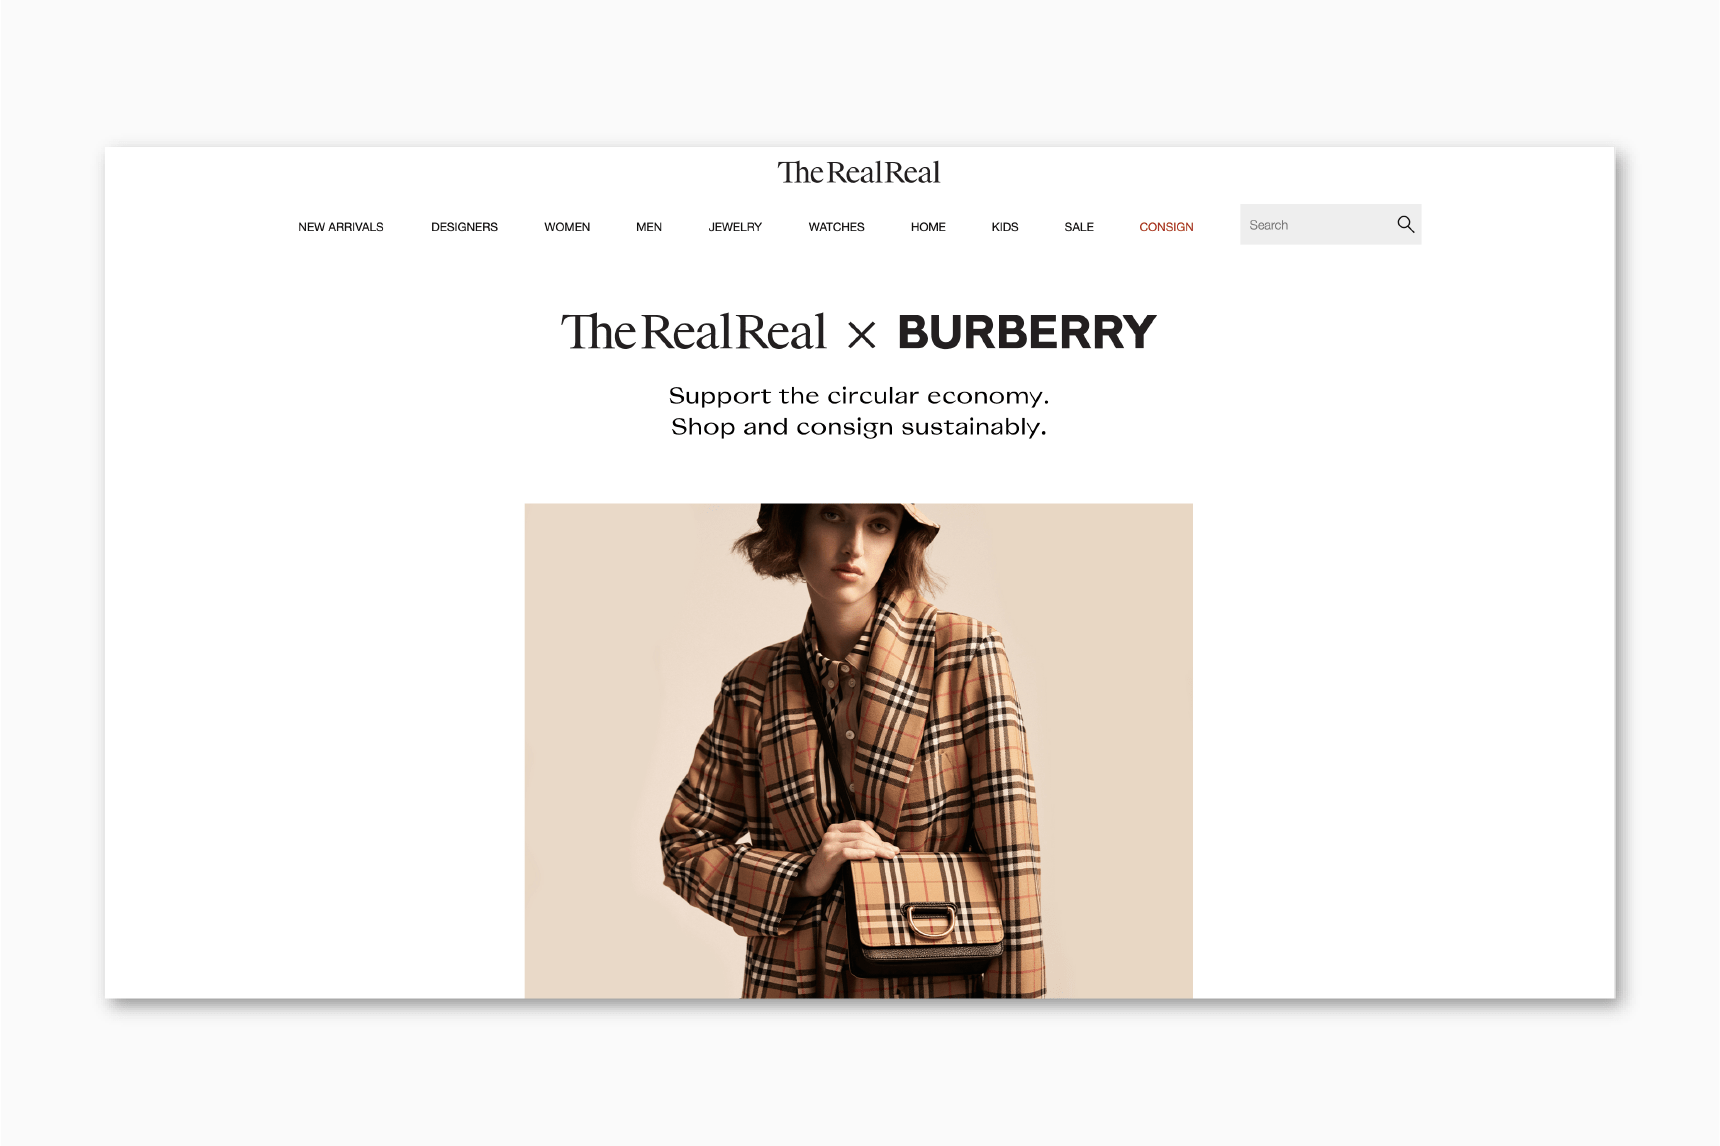 luxury resale retail transformation burberry the realreal luxe digital